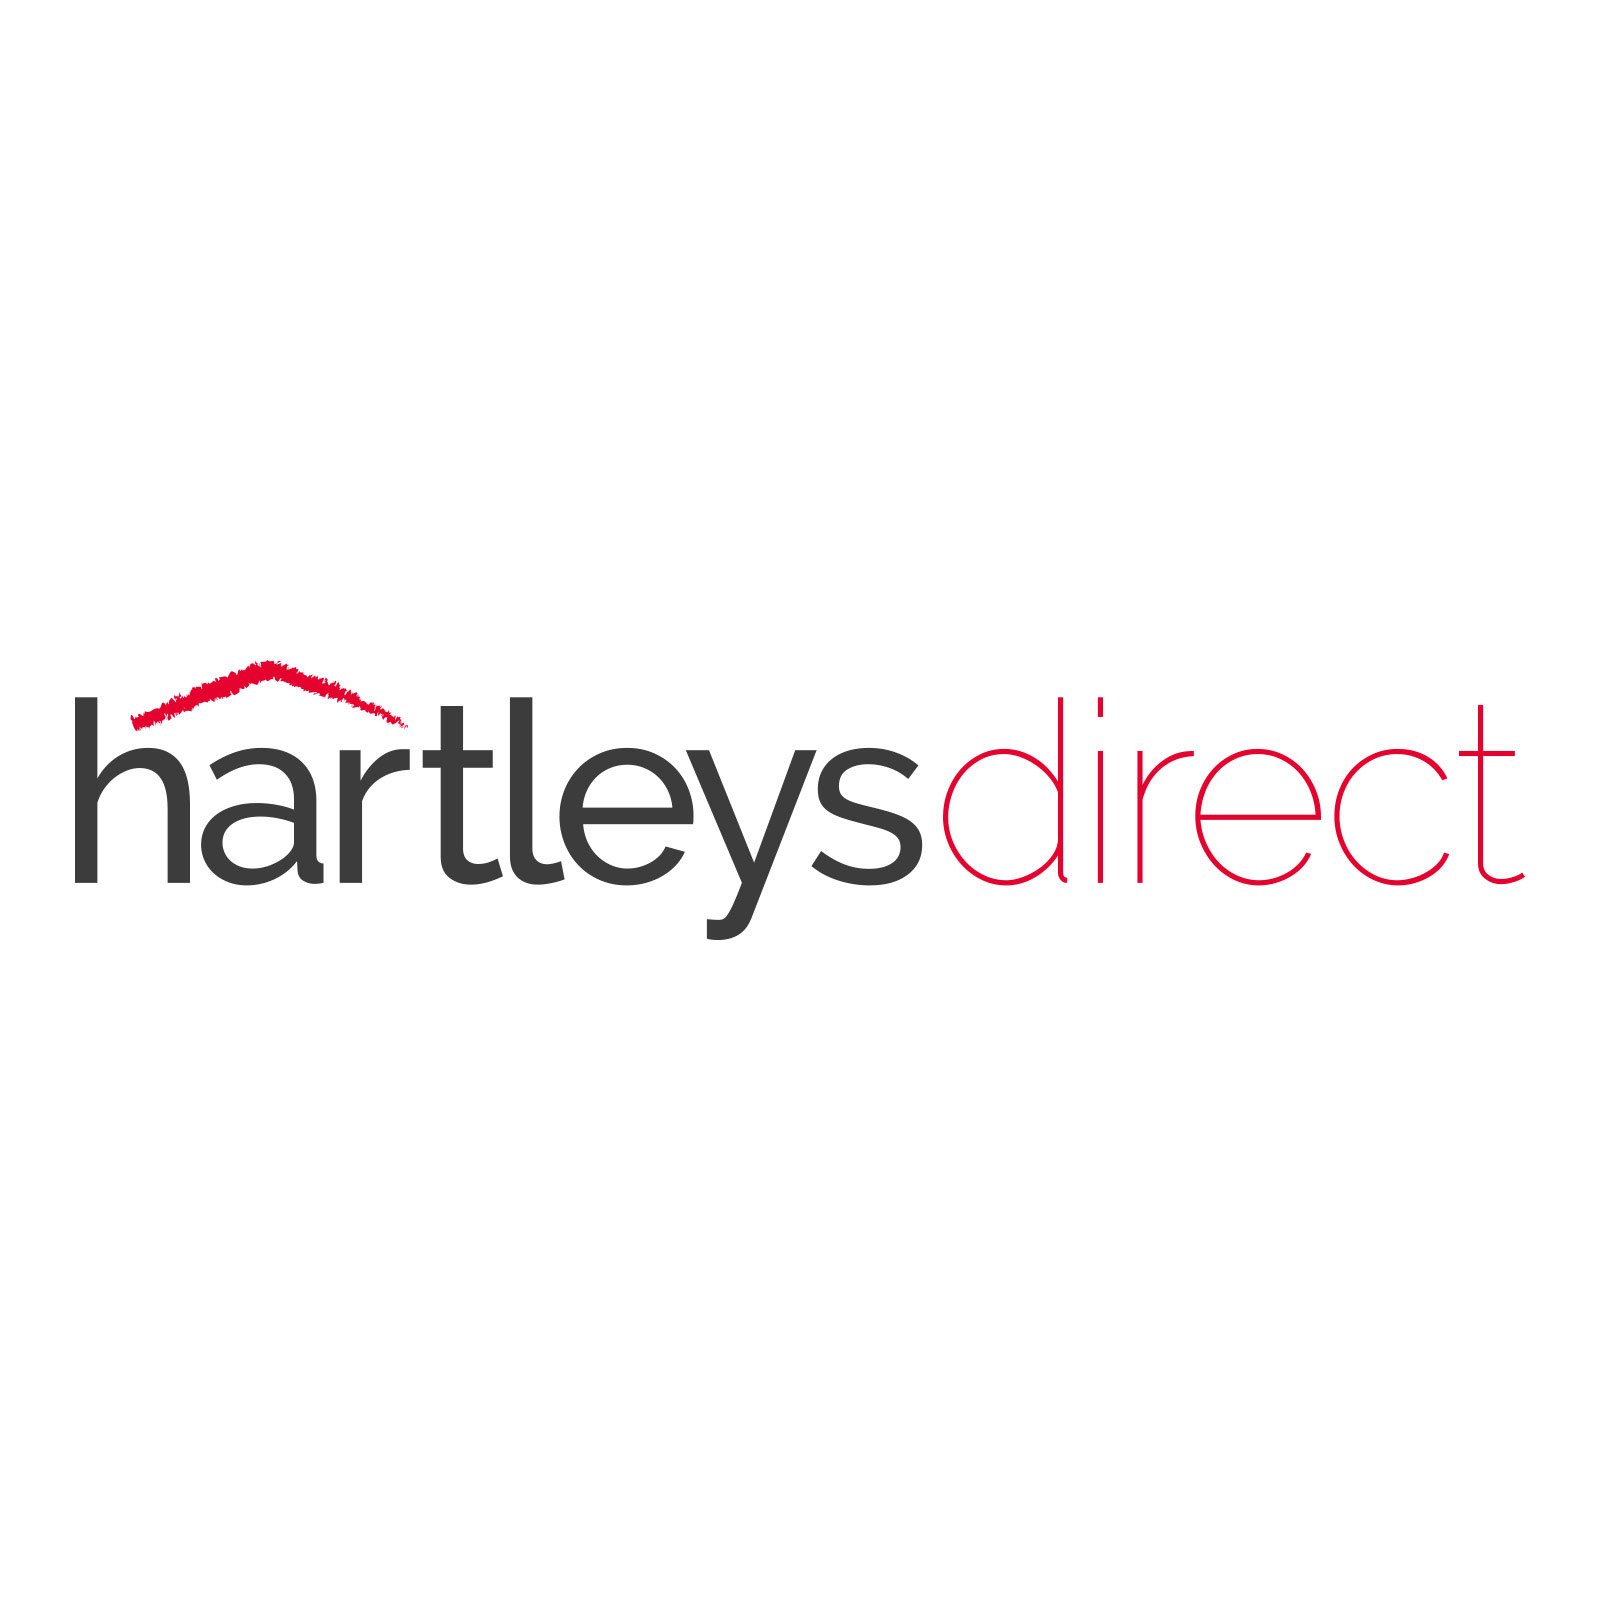 Hartleys-Replacement-Office-Chair-Castor-Wheels-on-White-Background.jpg